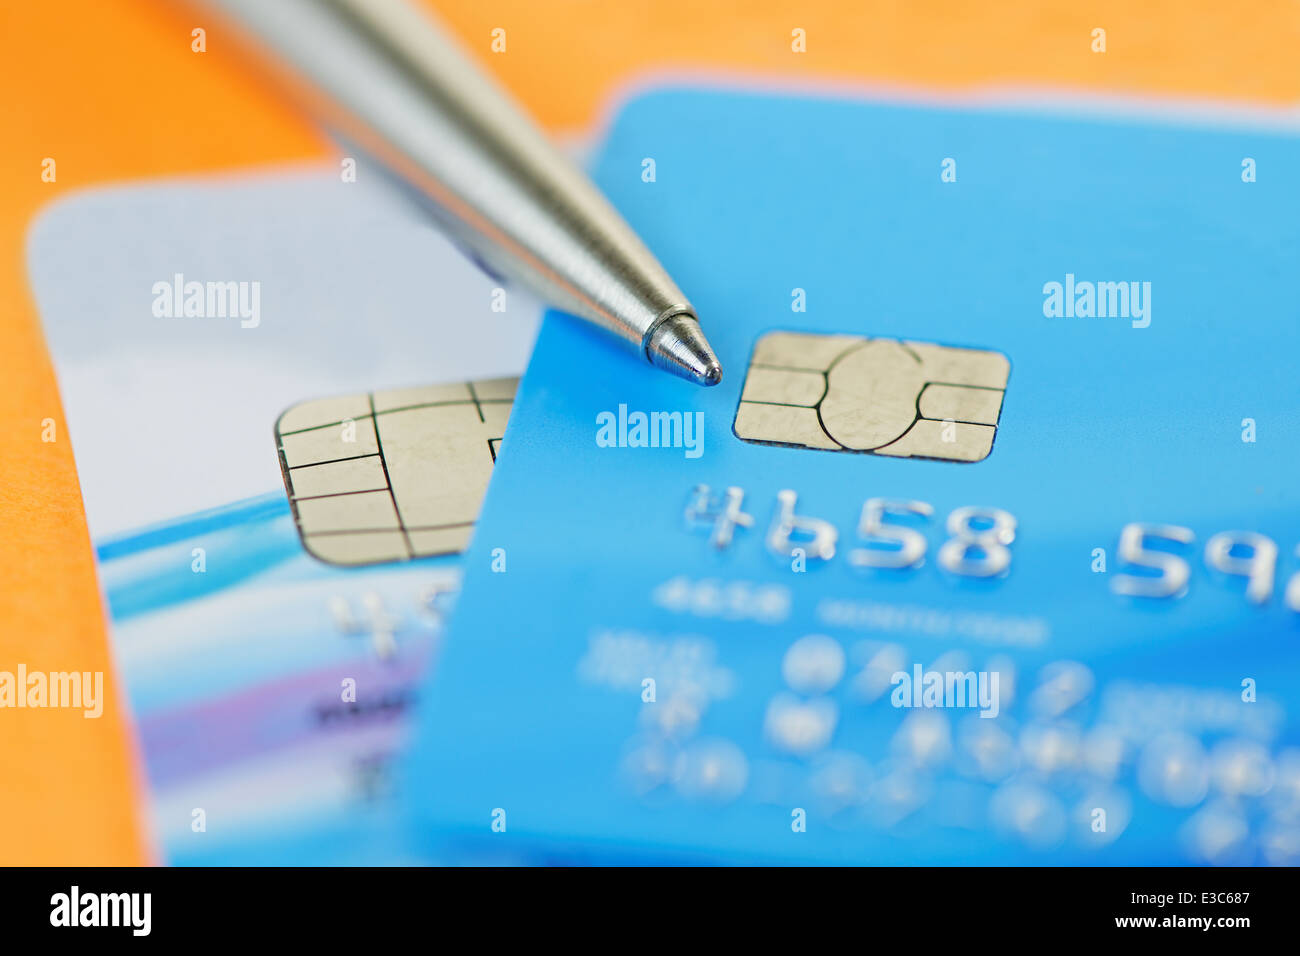 Buy Business Cards Stock Photos & Buy Business Cards Stock Images